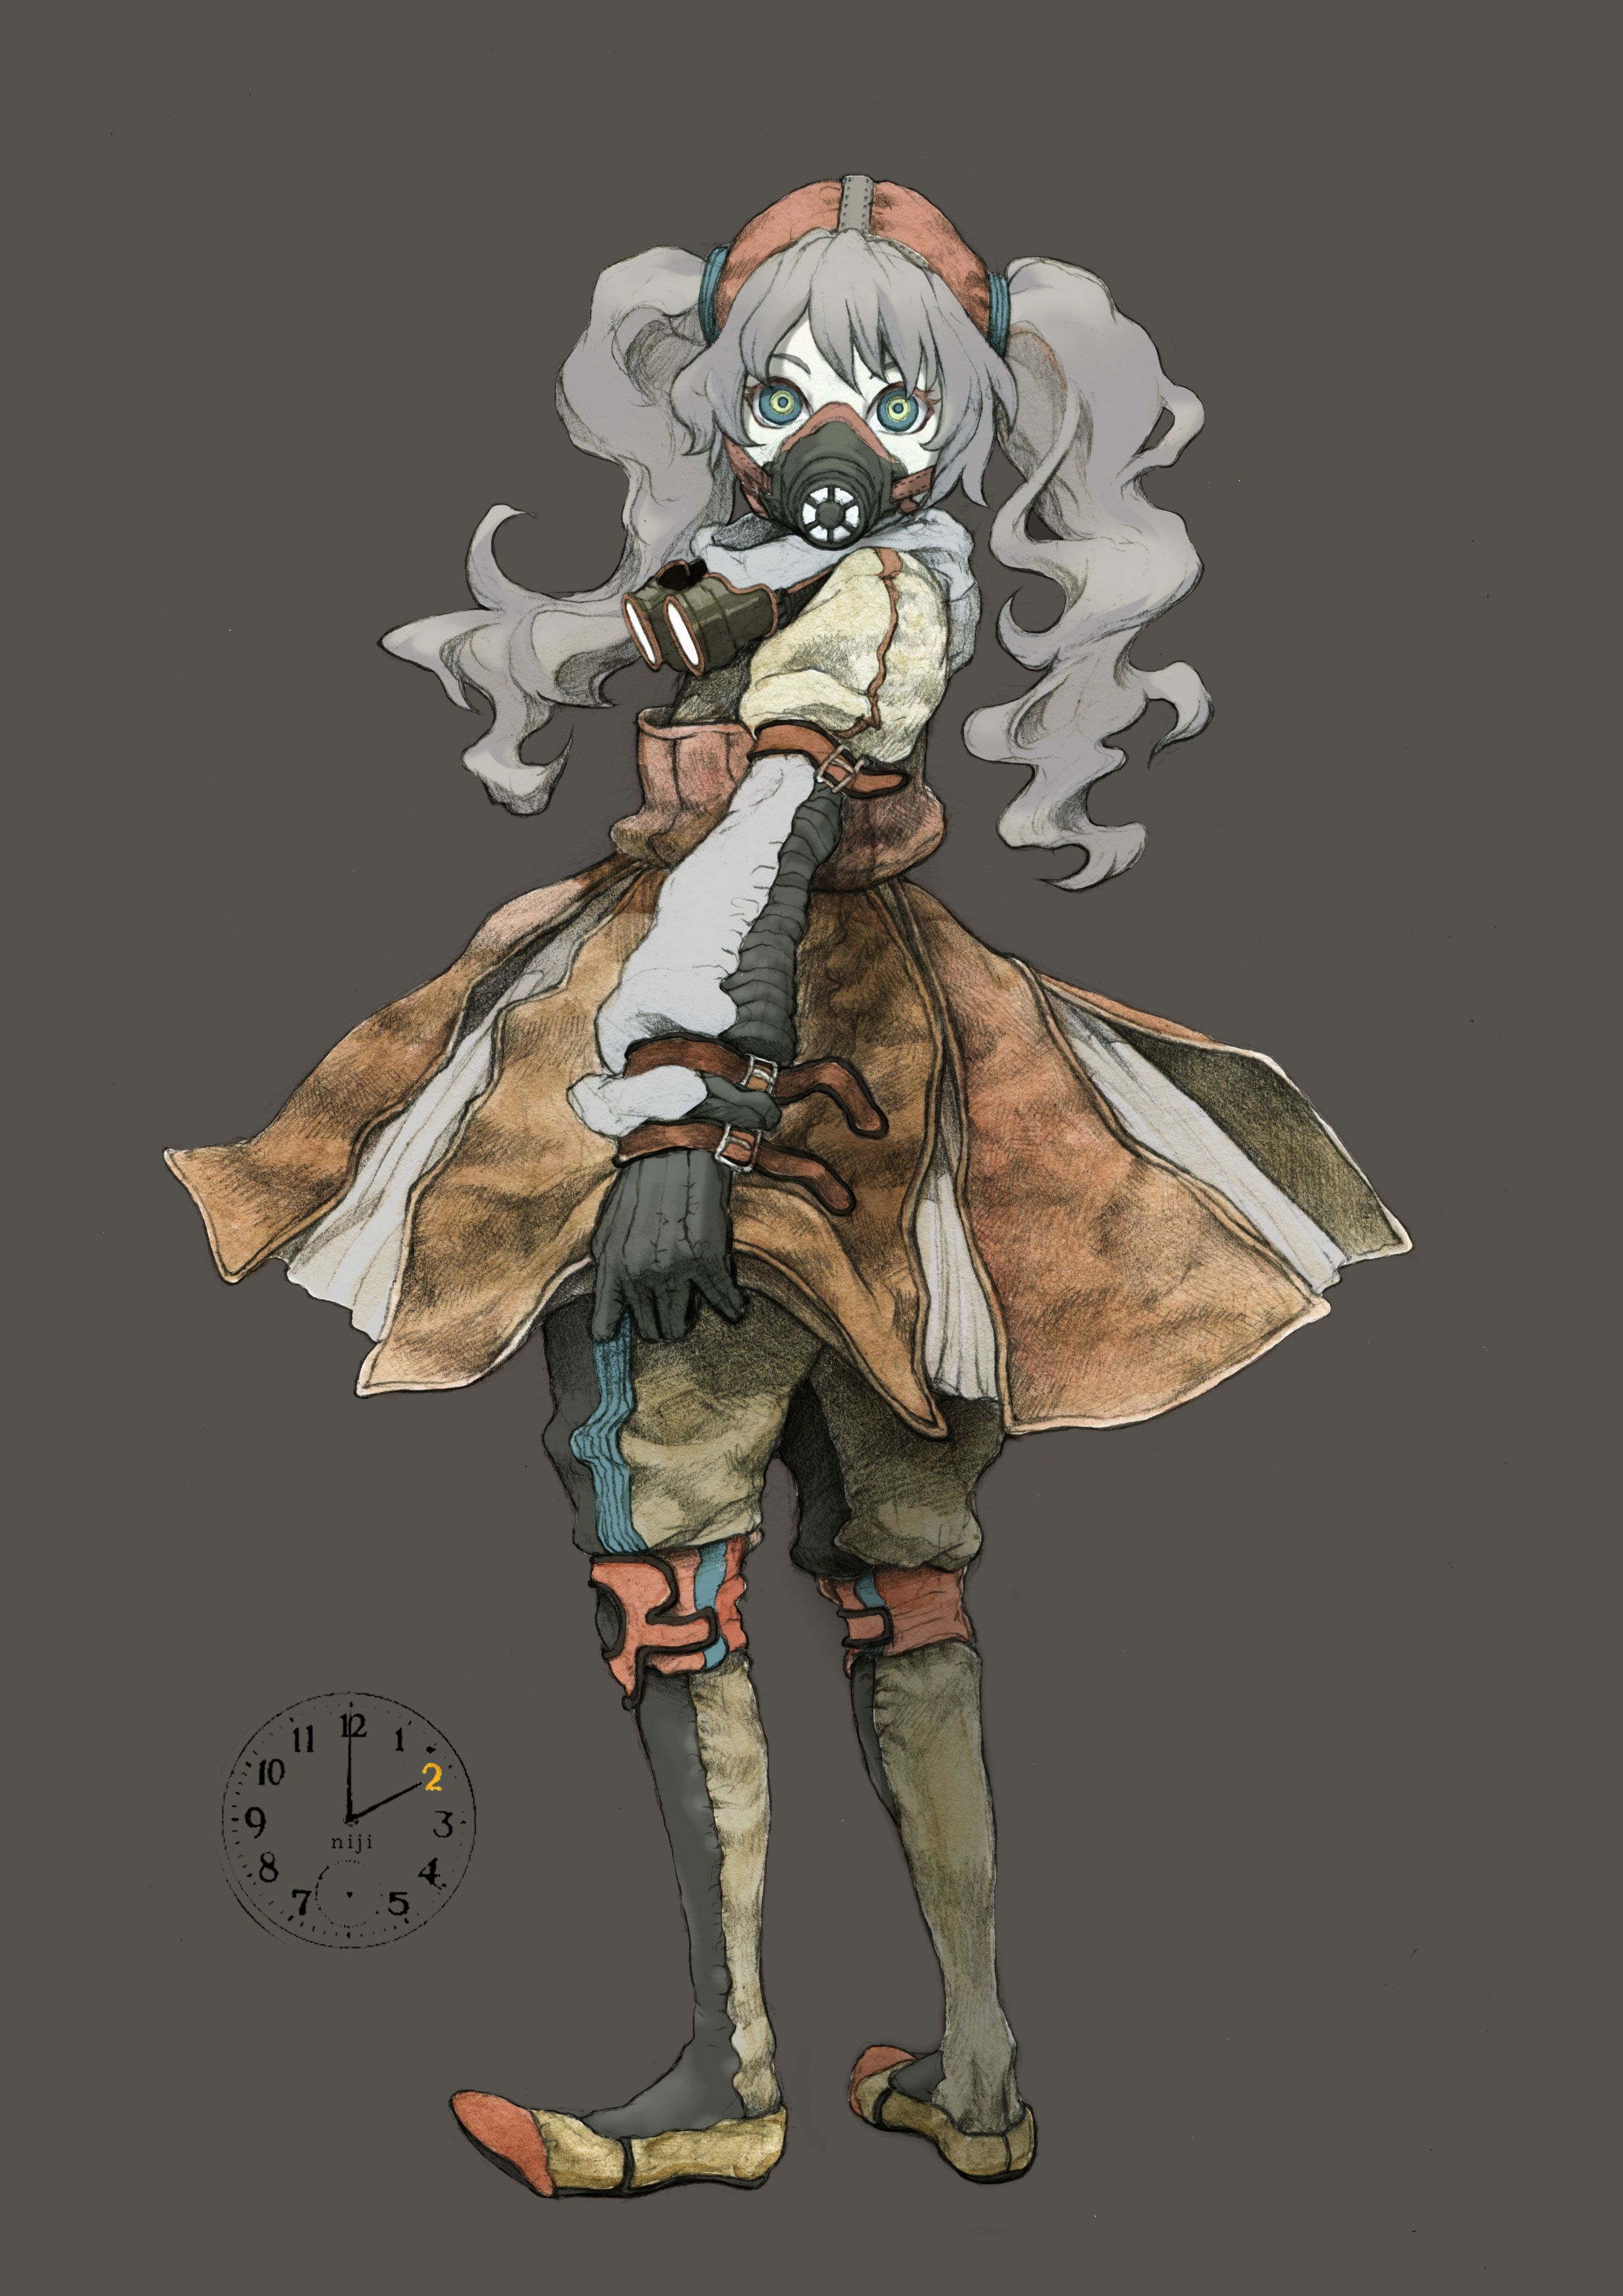 Pin by Cami on Reference Gas mask girl, Anime, Character